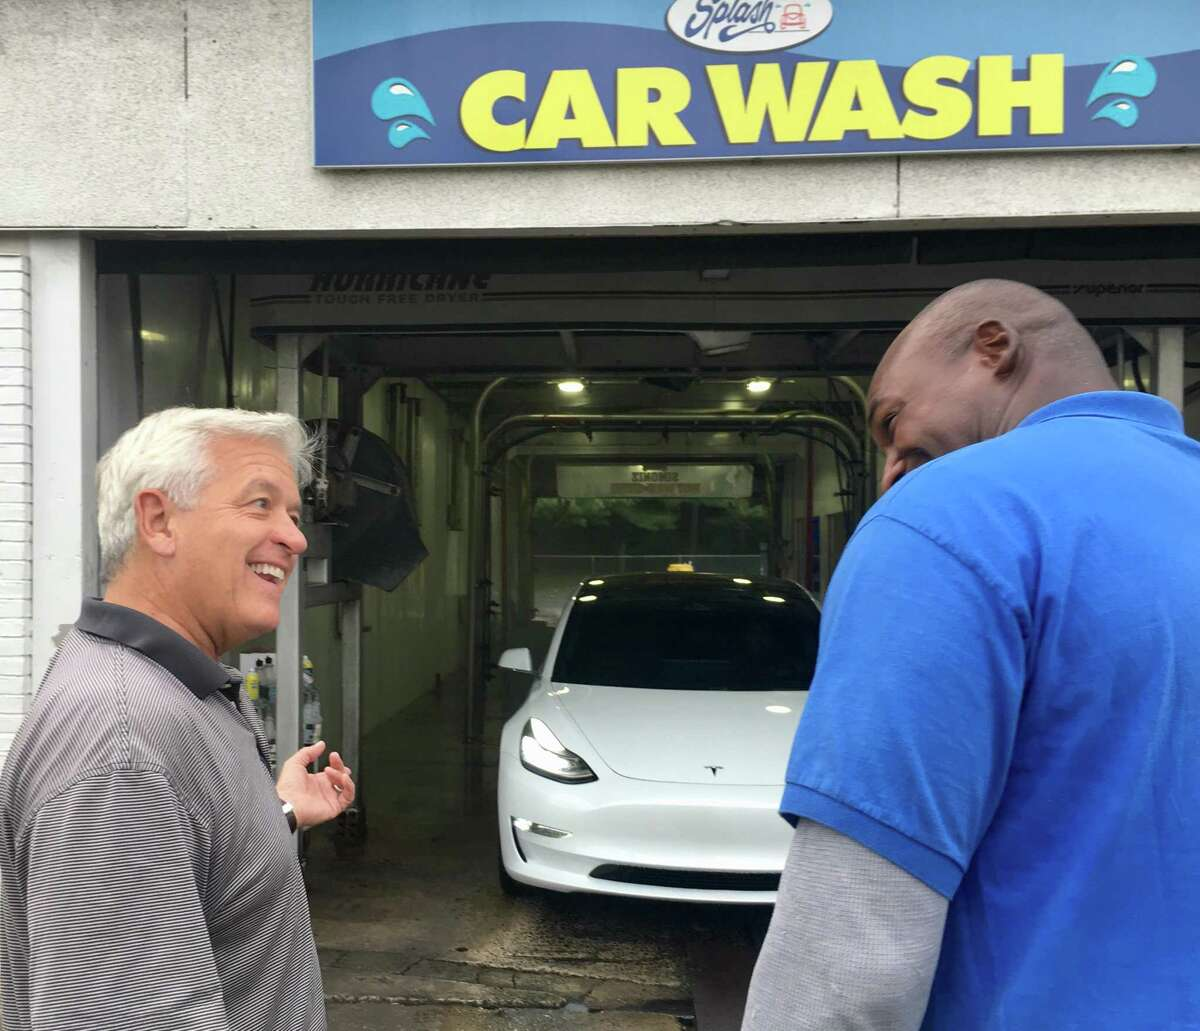 Mark Curtis, founder and CEO of Splash Car Wash, at left, is shown at the Greenwich company's Darien location, joking with an employee in 2019. Splash has been closed since the shutdown of most businesses.